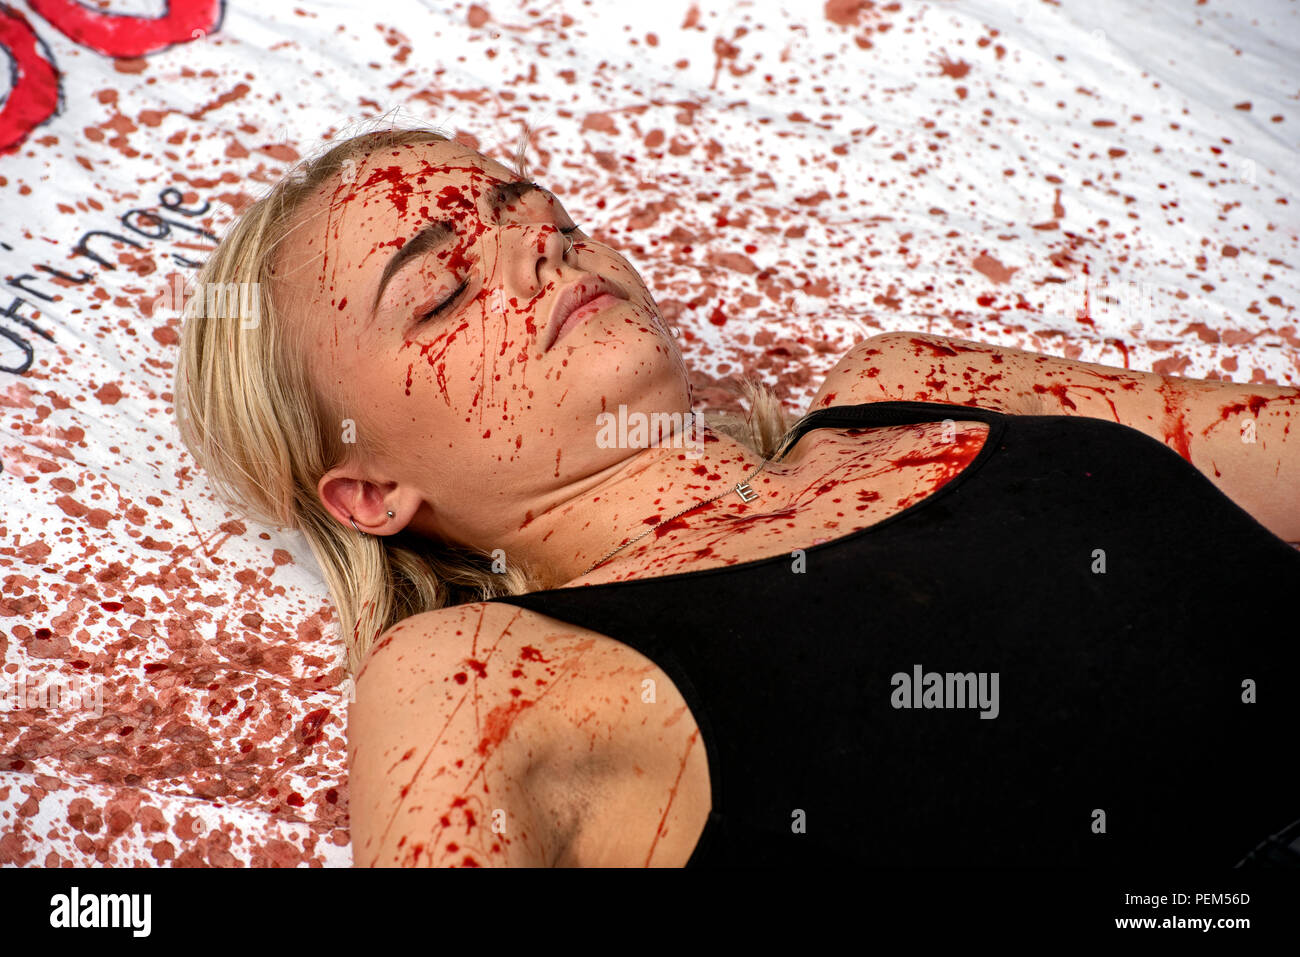 A cast member from University of York Drama Society, splattered with fake blood, promoting 'Bad Dog' on the High Street during the Edinburgh   Fringe. - Stock Image